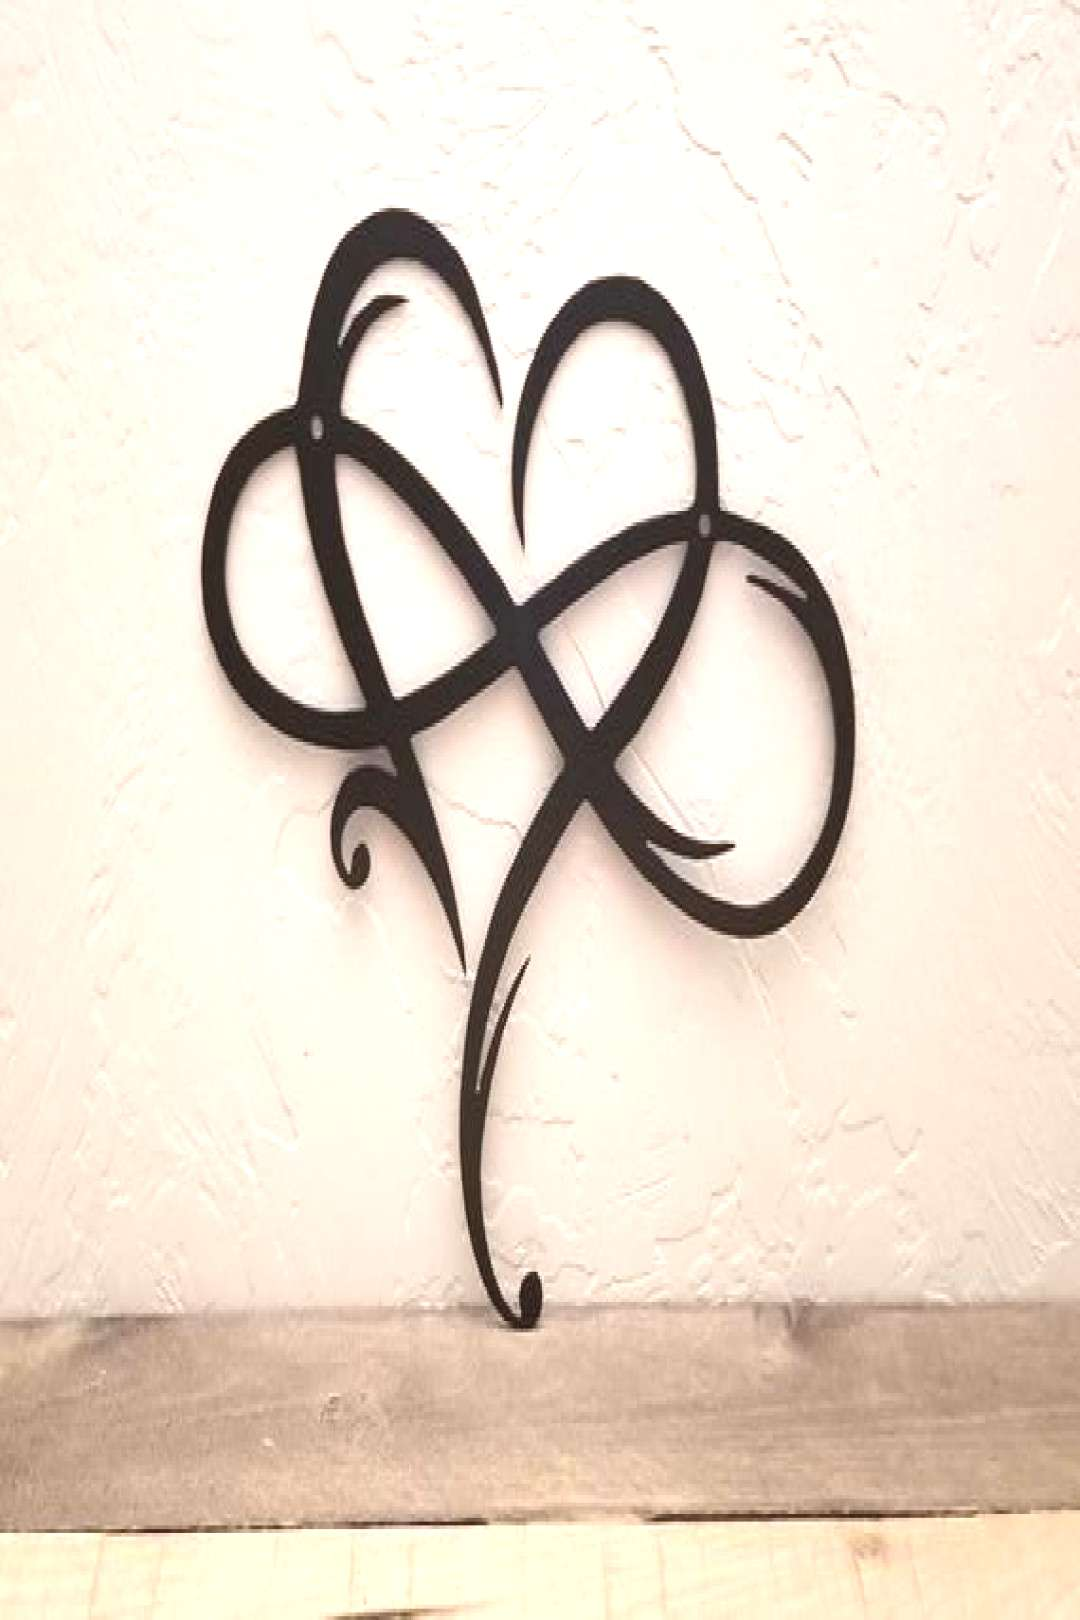 Infinity Heart Metal Sign - Infinity Symbol Metal Wall Art - Love Infinity Sign with Heart Intertwi